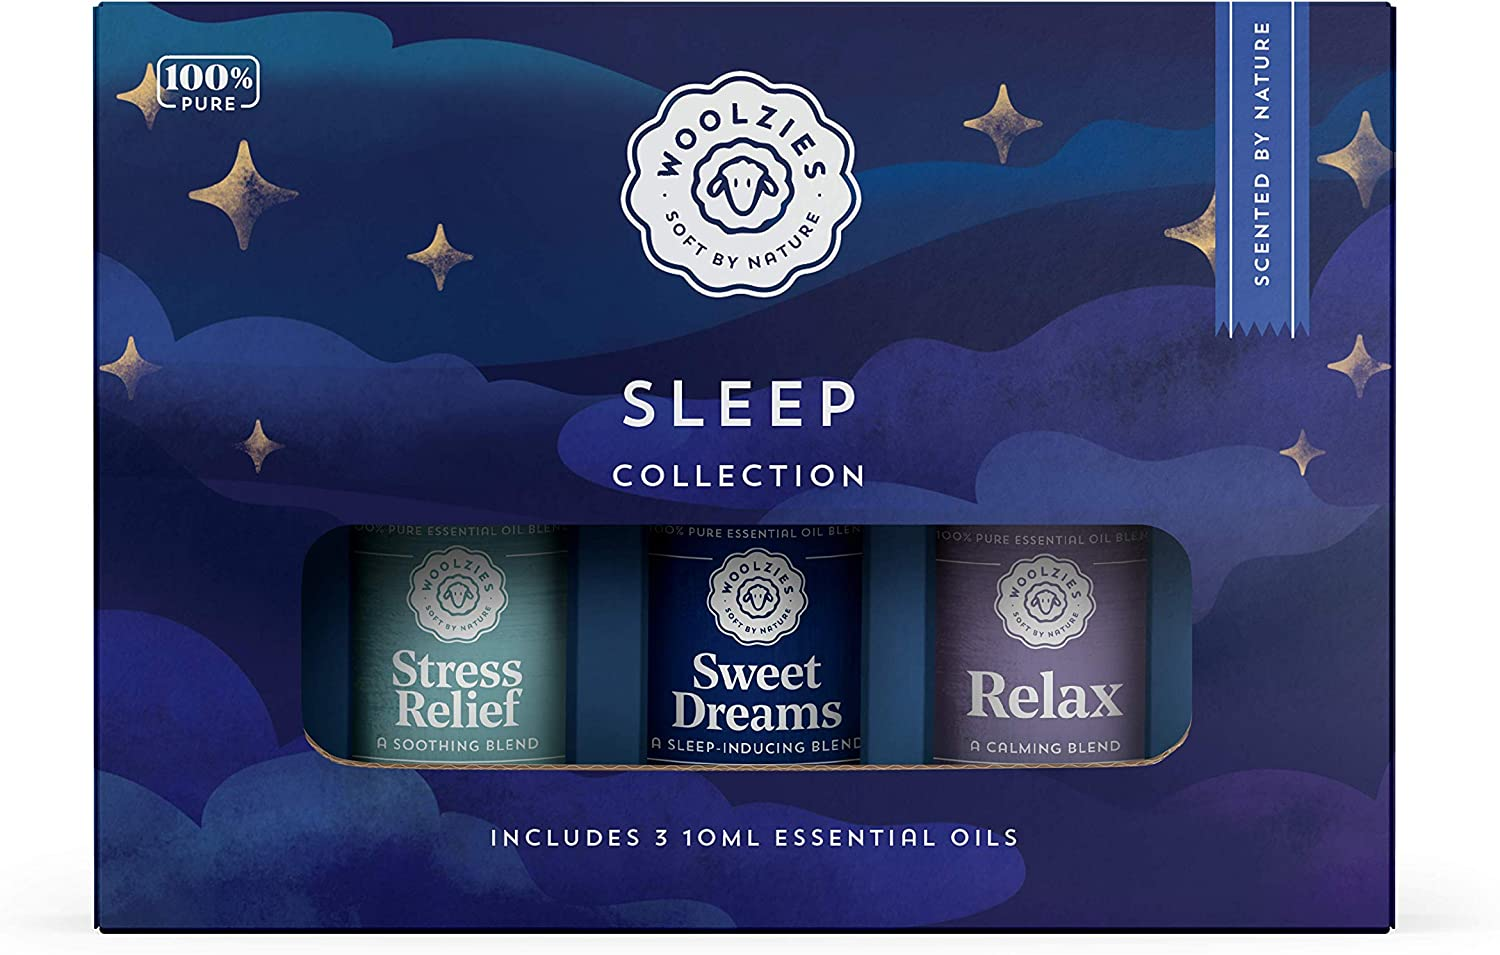 Amazon Com Woolzies Sleep Collection Essential Oil Blend Set Incl Sweet Dreams Relax Stress Relief Oils Helps Sleeping Faster Better Restful Natural Sleeping Aid Reliefs Stress Health Personal